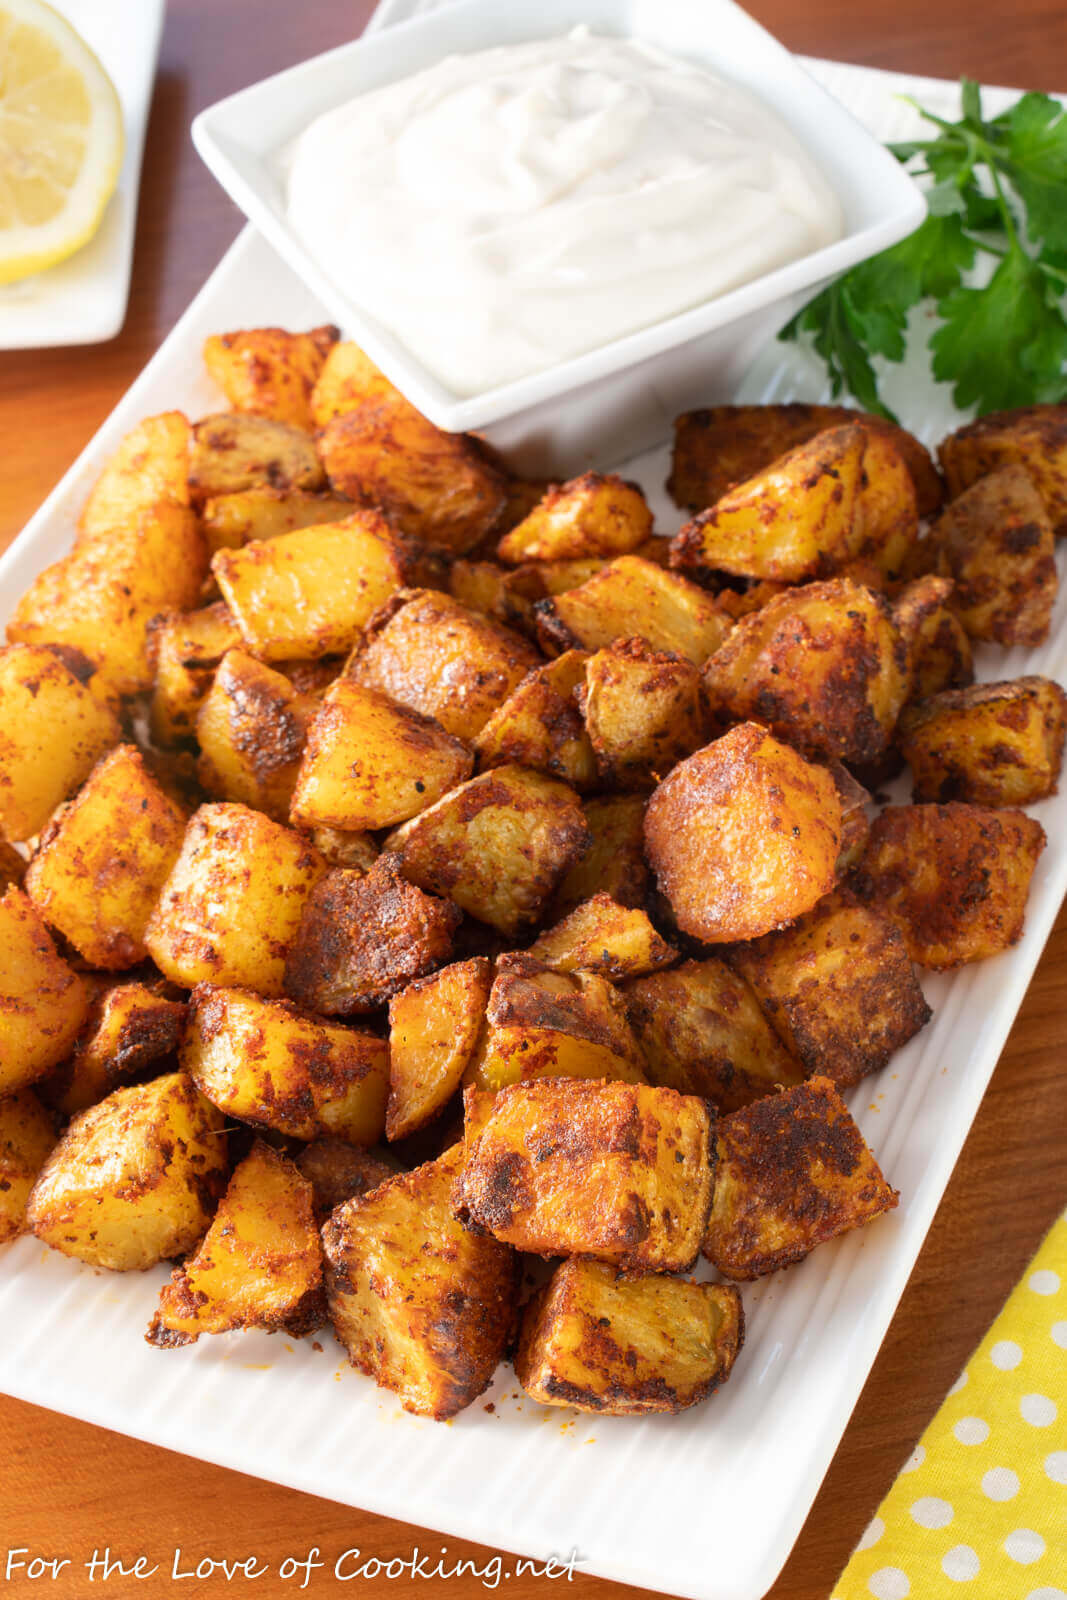 Spicy Potatoes with Lemon-Garlic Aioli